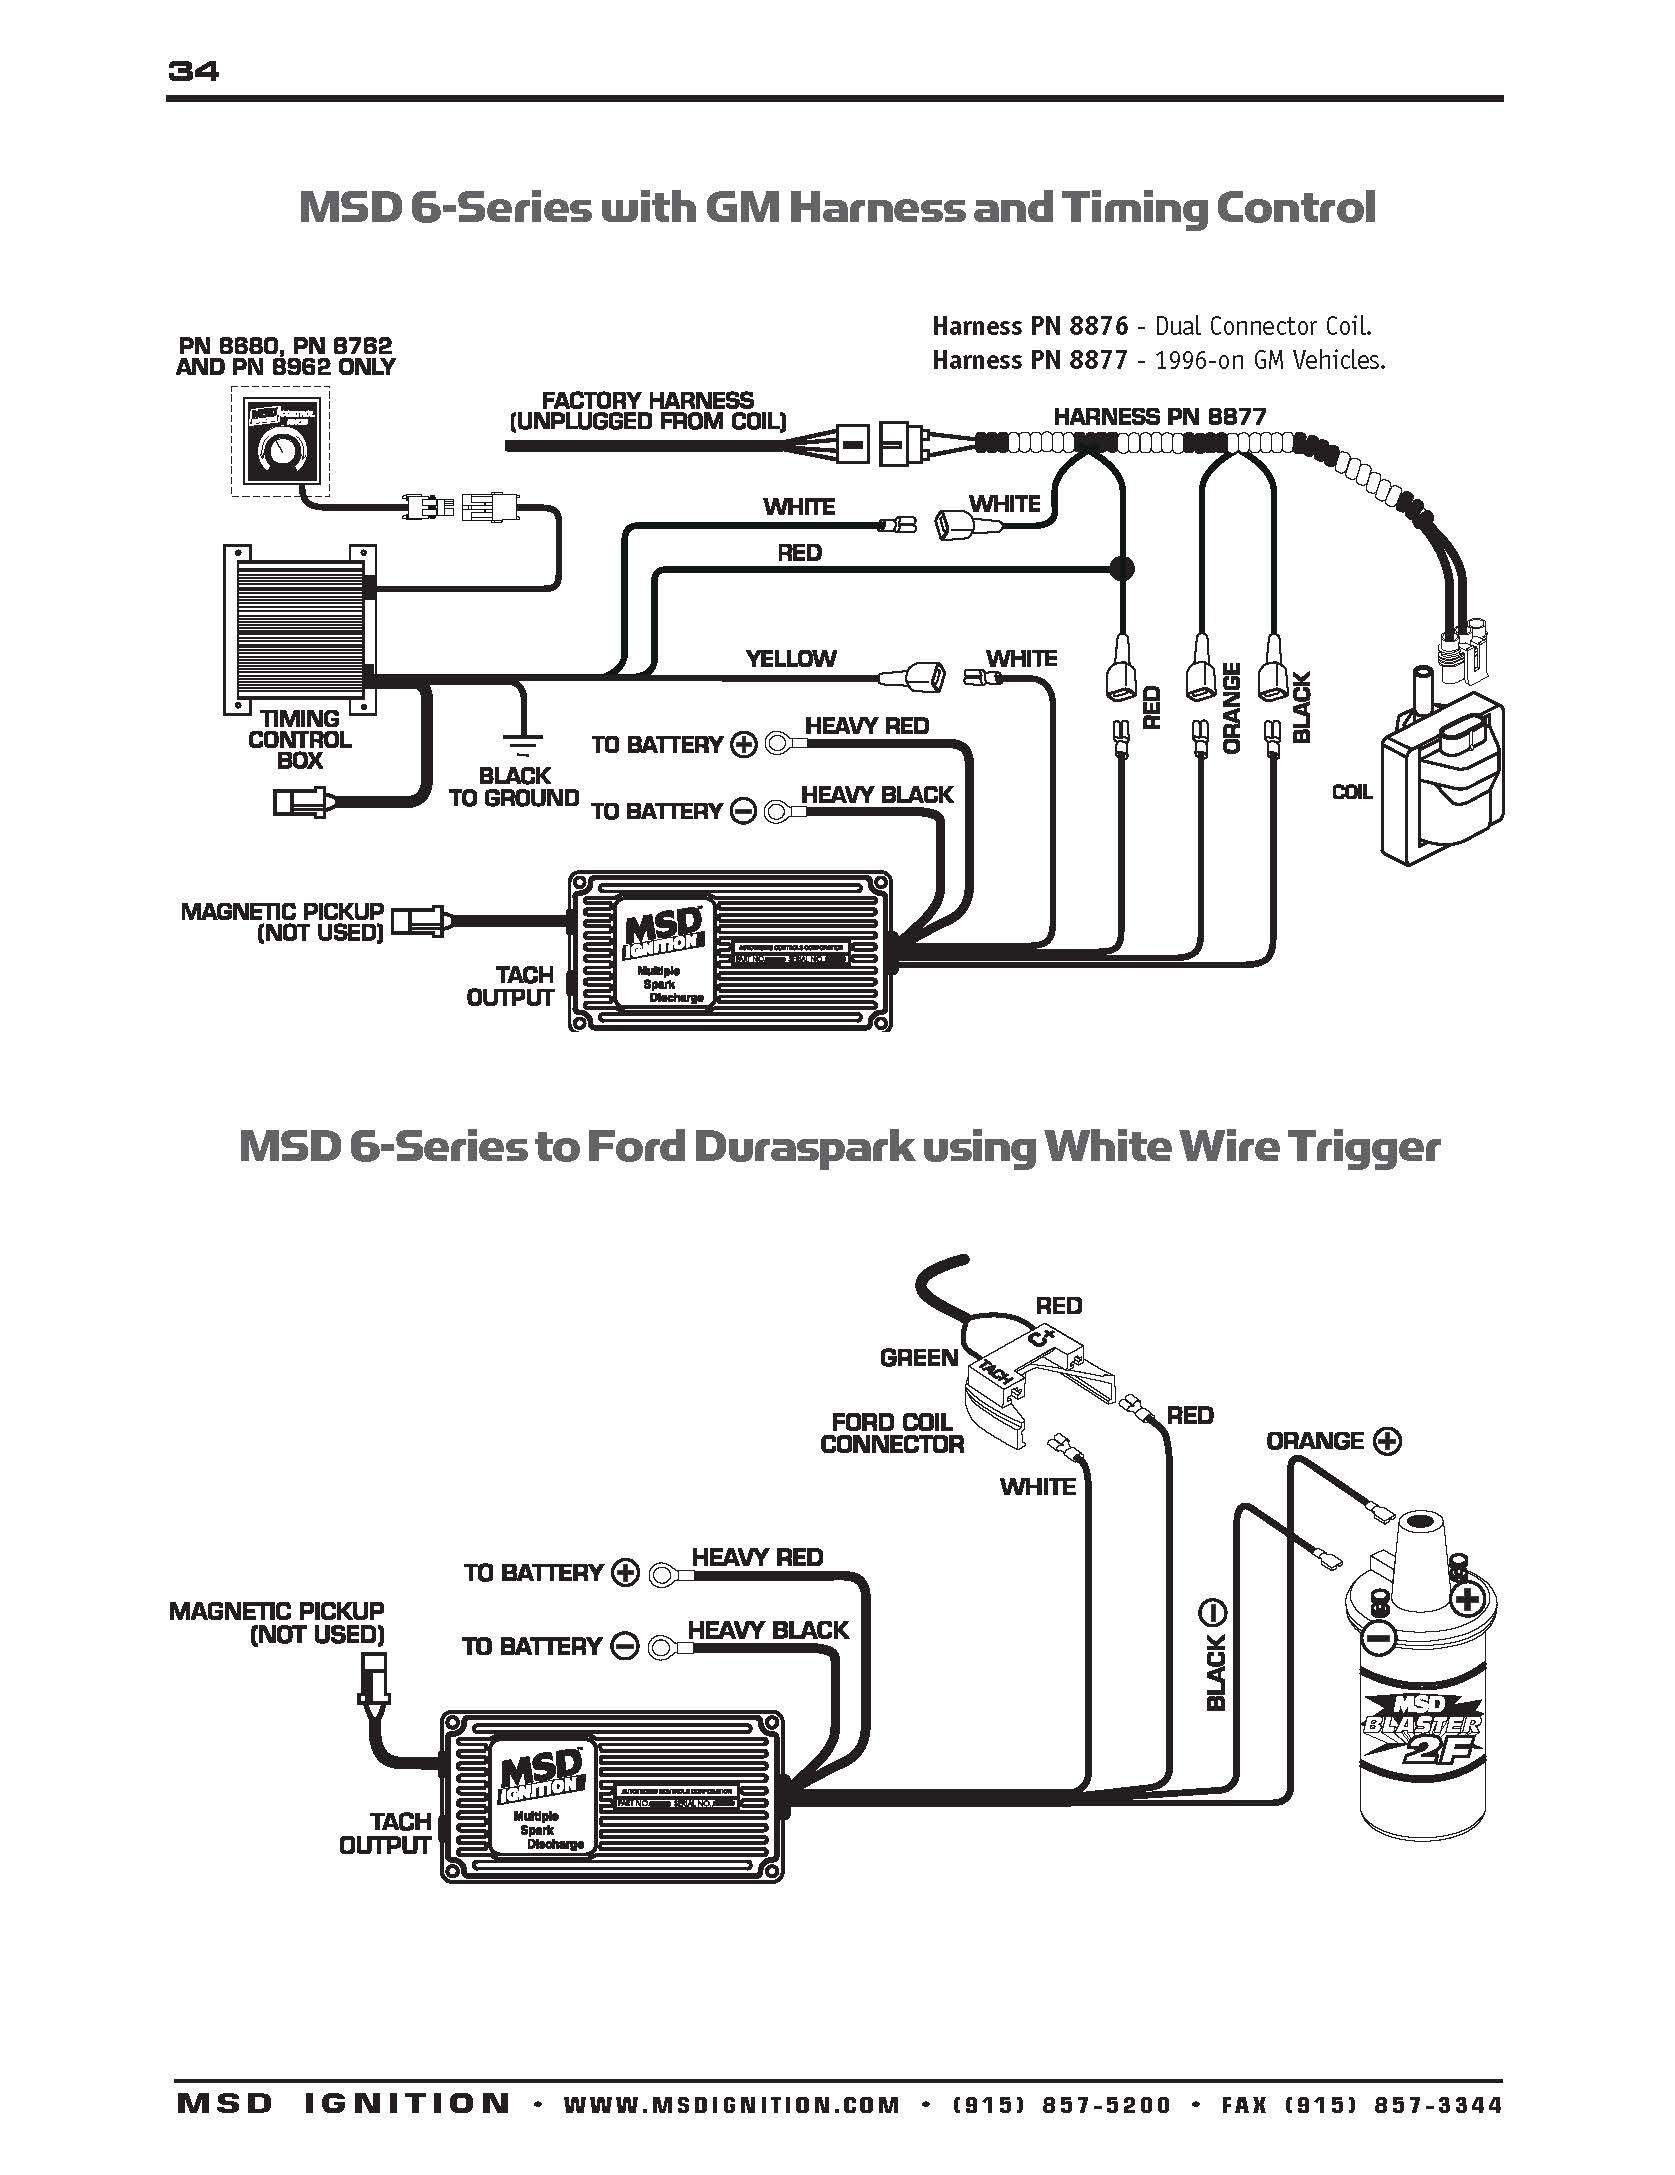 Ford Ignition Box Wiring Wiring Diagram Used Ford Tfi Distributor Wiring Diagram Ford Distributor Wiring Diagram